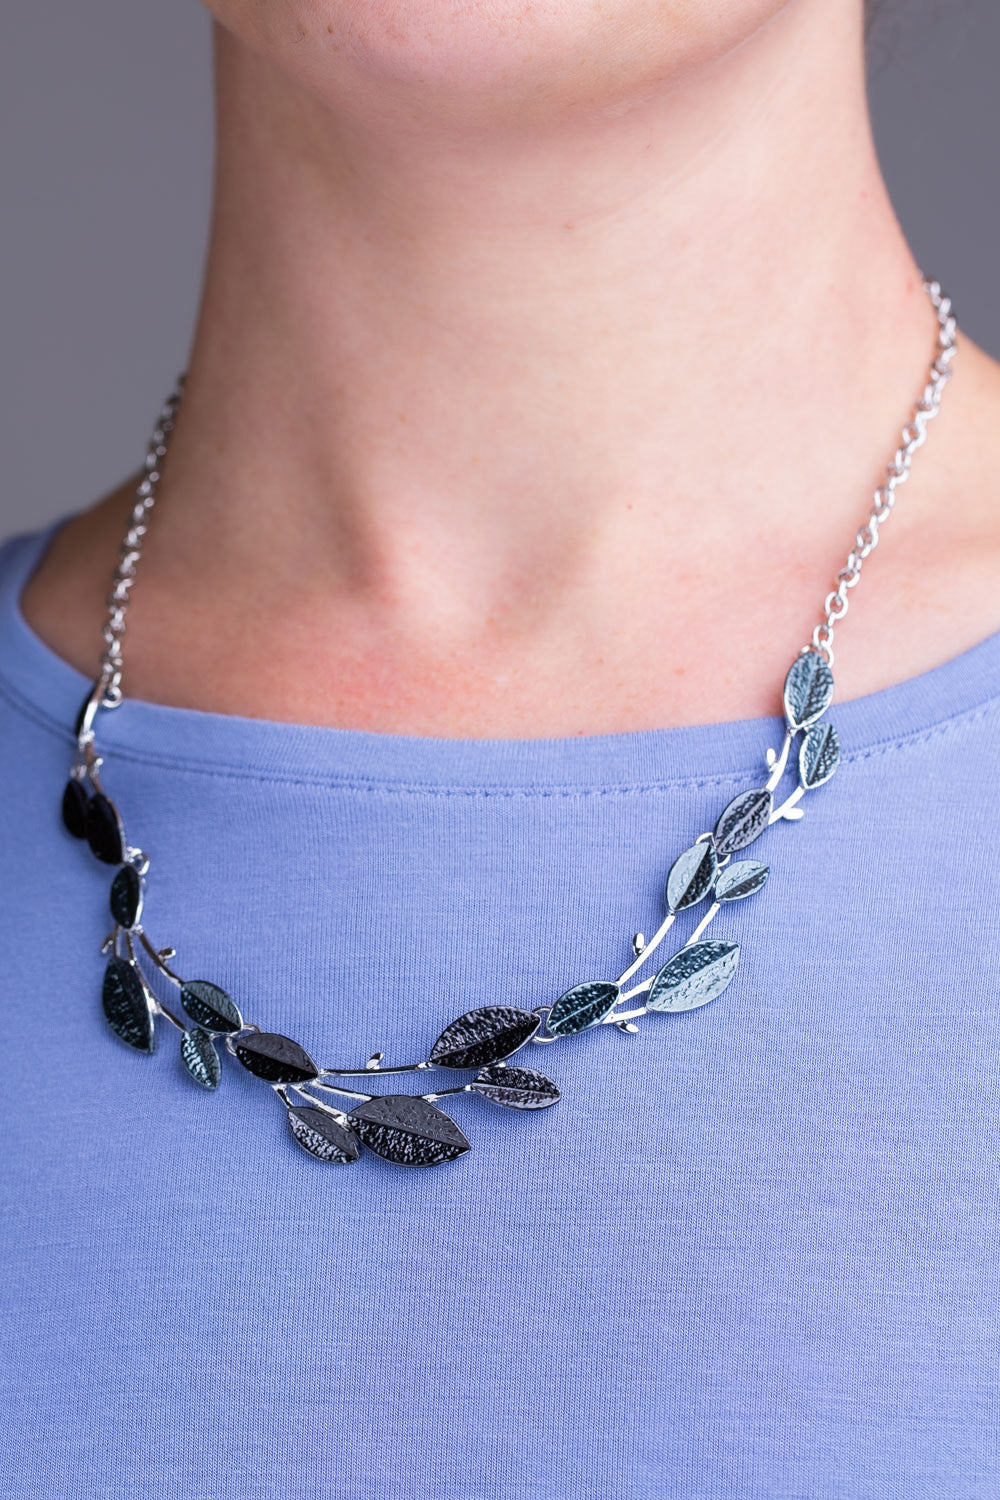 Type 2 Winter Frost Necklace